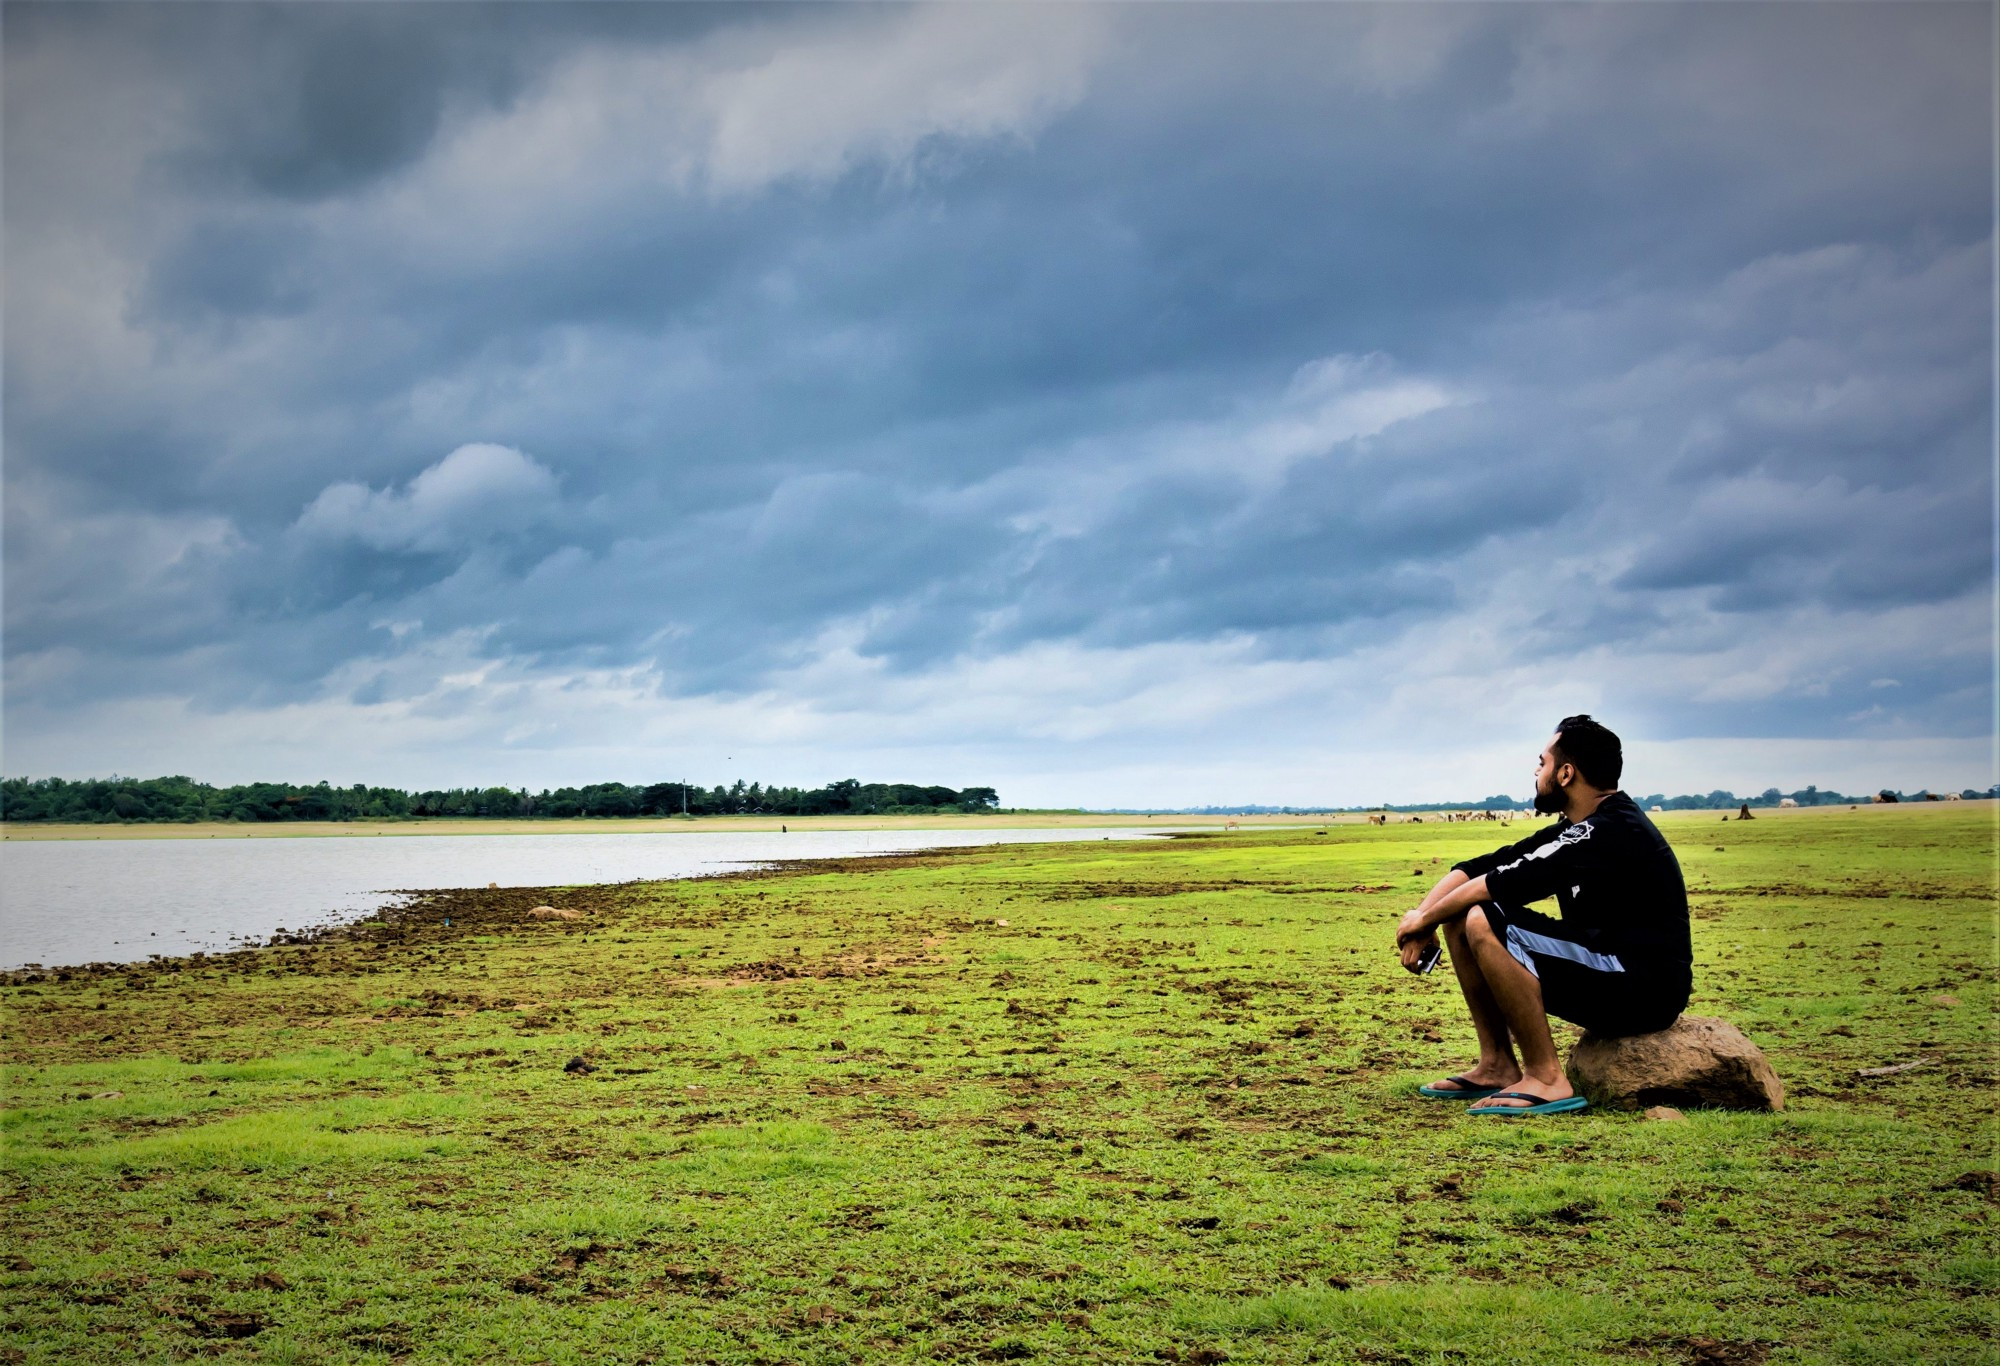 man with dark hair and bear sitting on rock in grassy field looking out over lake and stormy skies